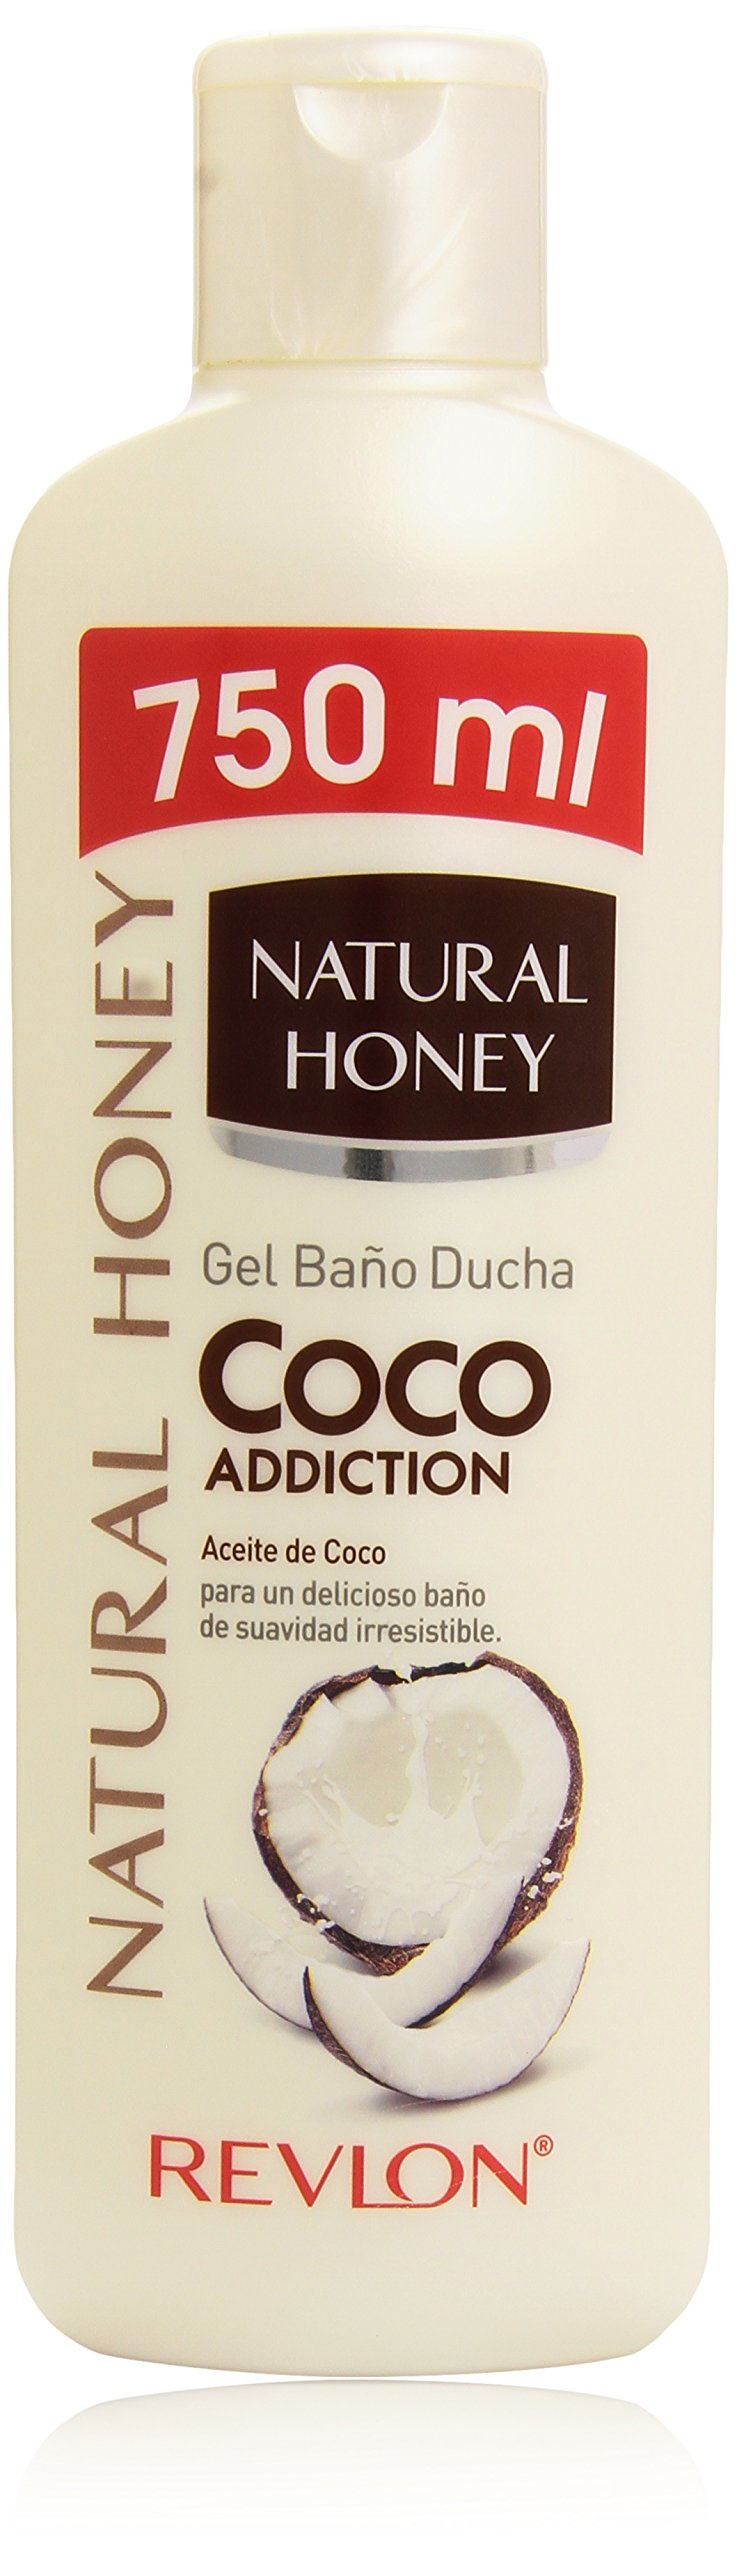 Natural Honey - Coco Addiction - Gel Baño Ducha - 750 ml product image